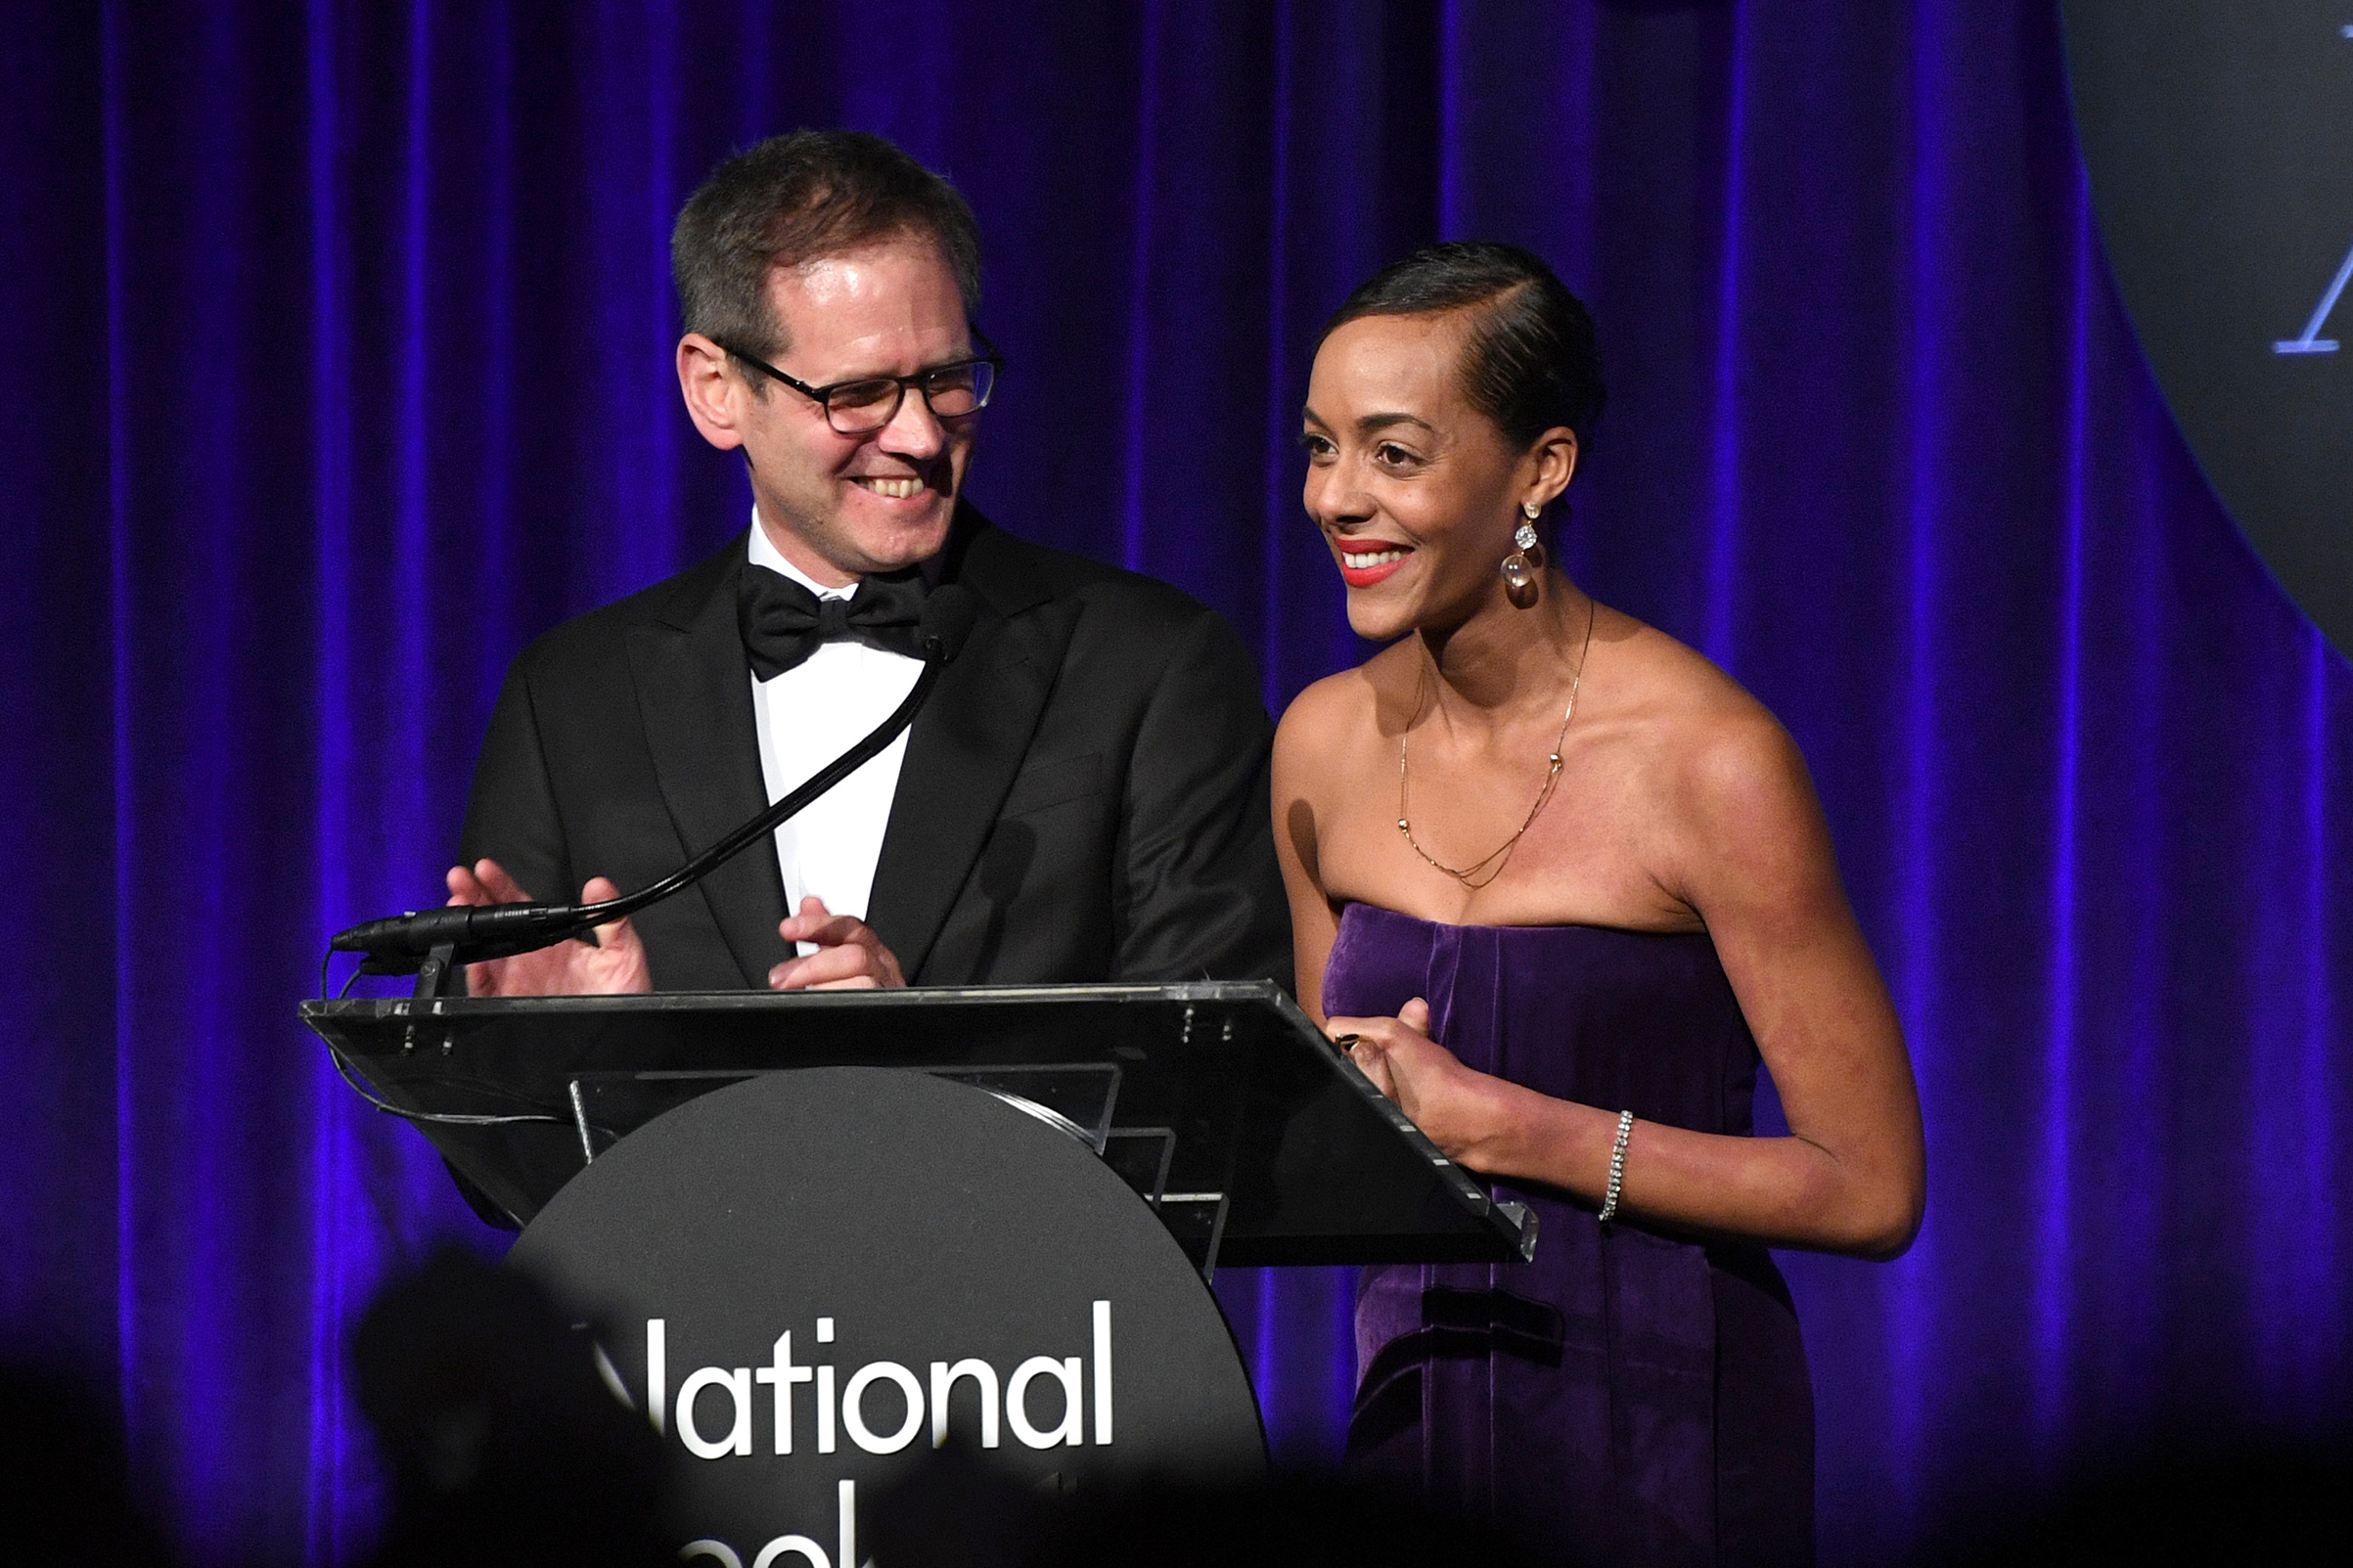 David Steinberger and Lisa Lucas speak onstage during the 68th National Book Awards at Cipriani Wall Street on November 15, 2017 in New York City.